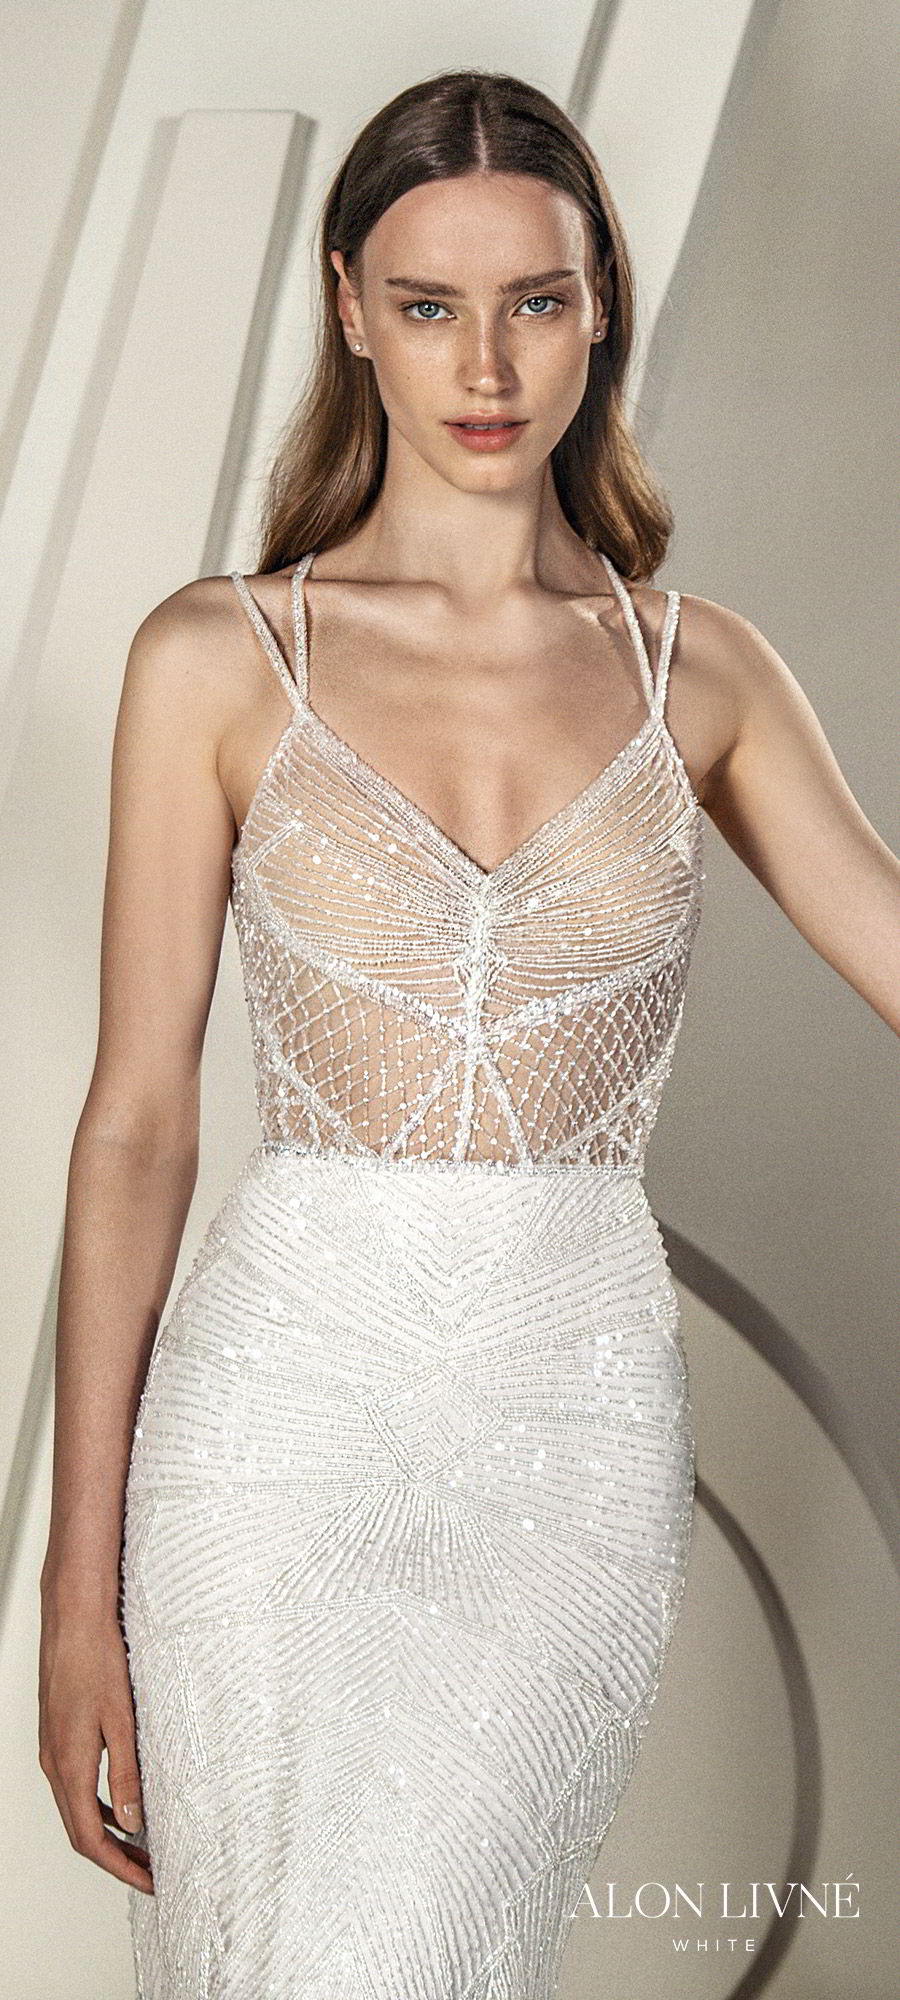 Spring Cocktail Dresses 2020.Stunning Alon Livne White Spring 2020 Wedding Dresses